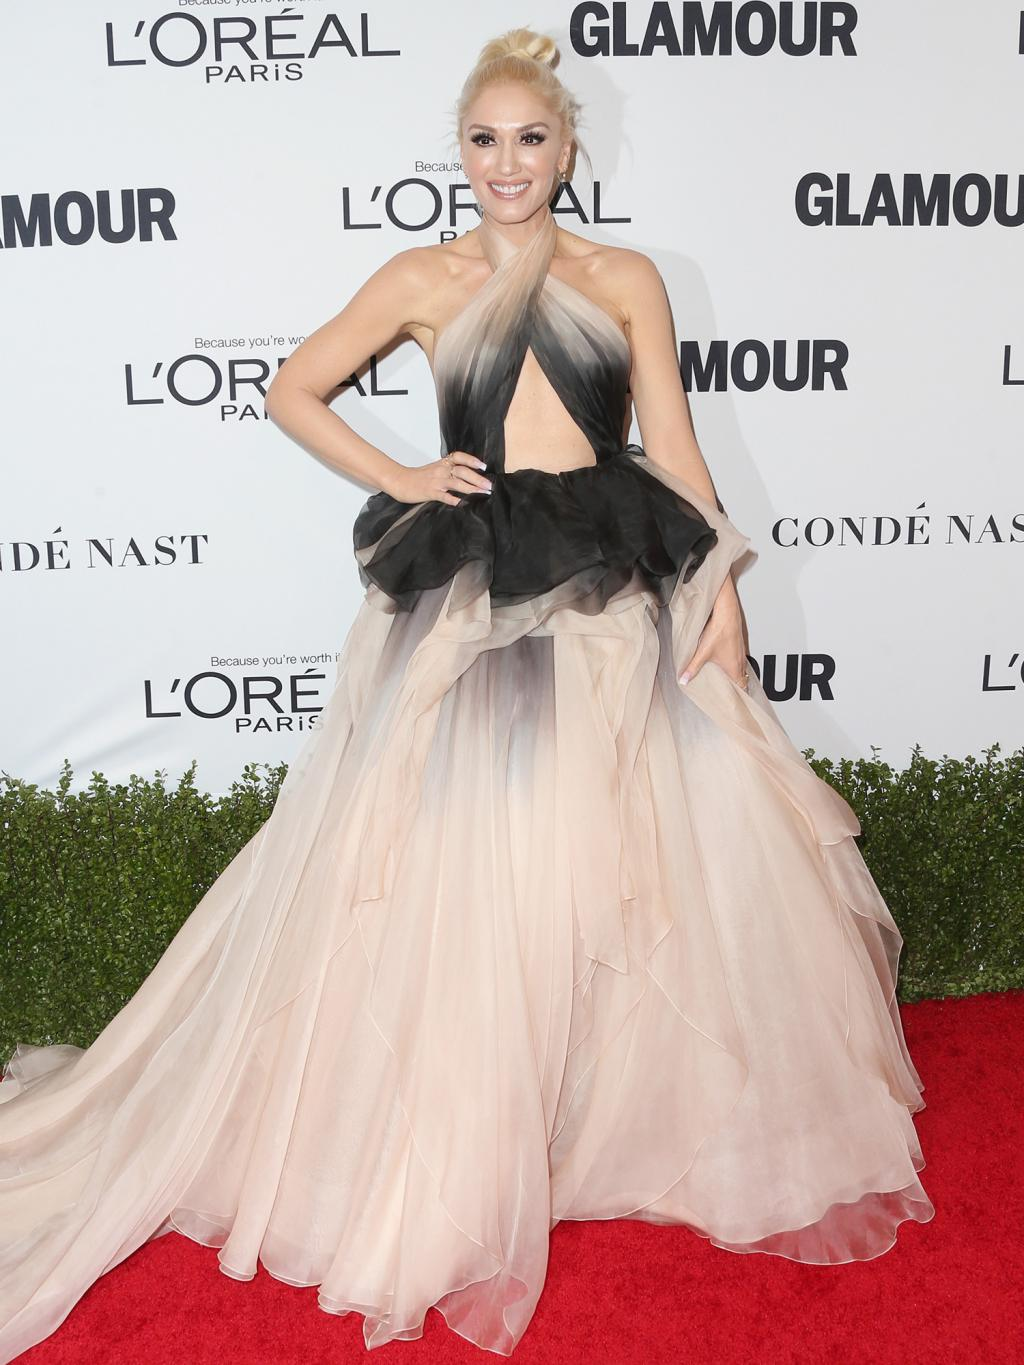 Gwen Stefani Stuns in Marchesa at Glamour Women of the Year Awards